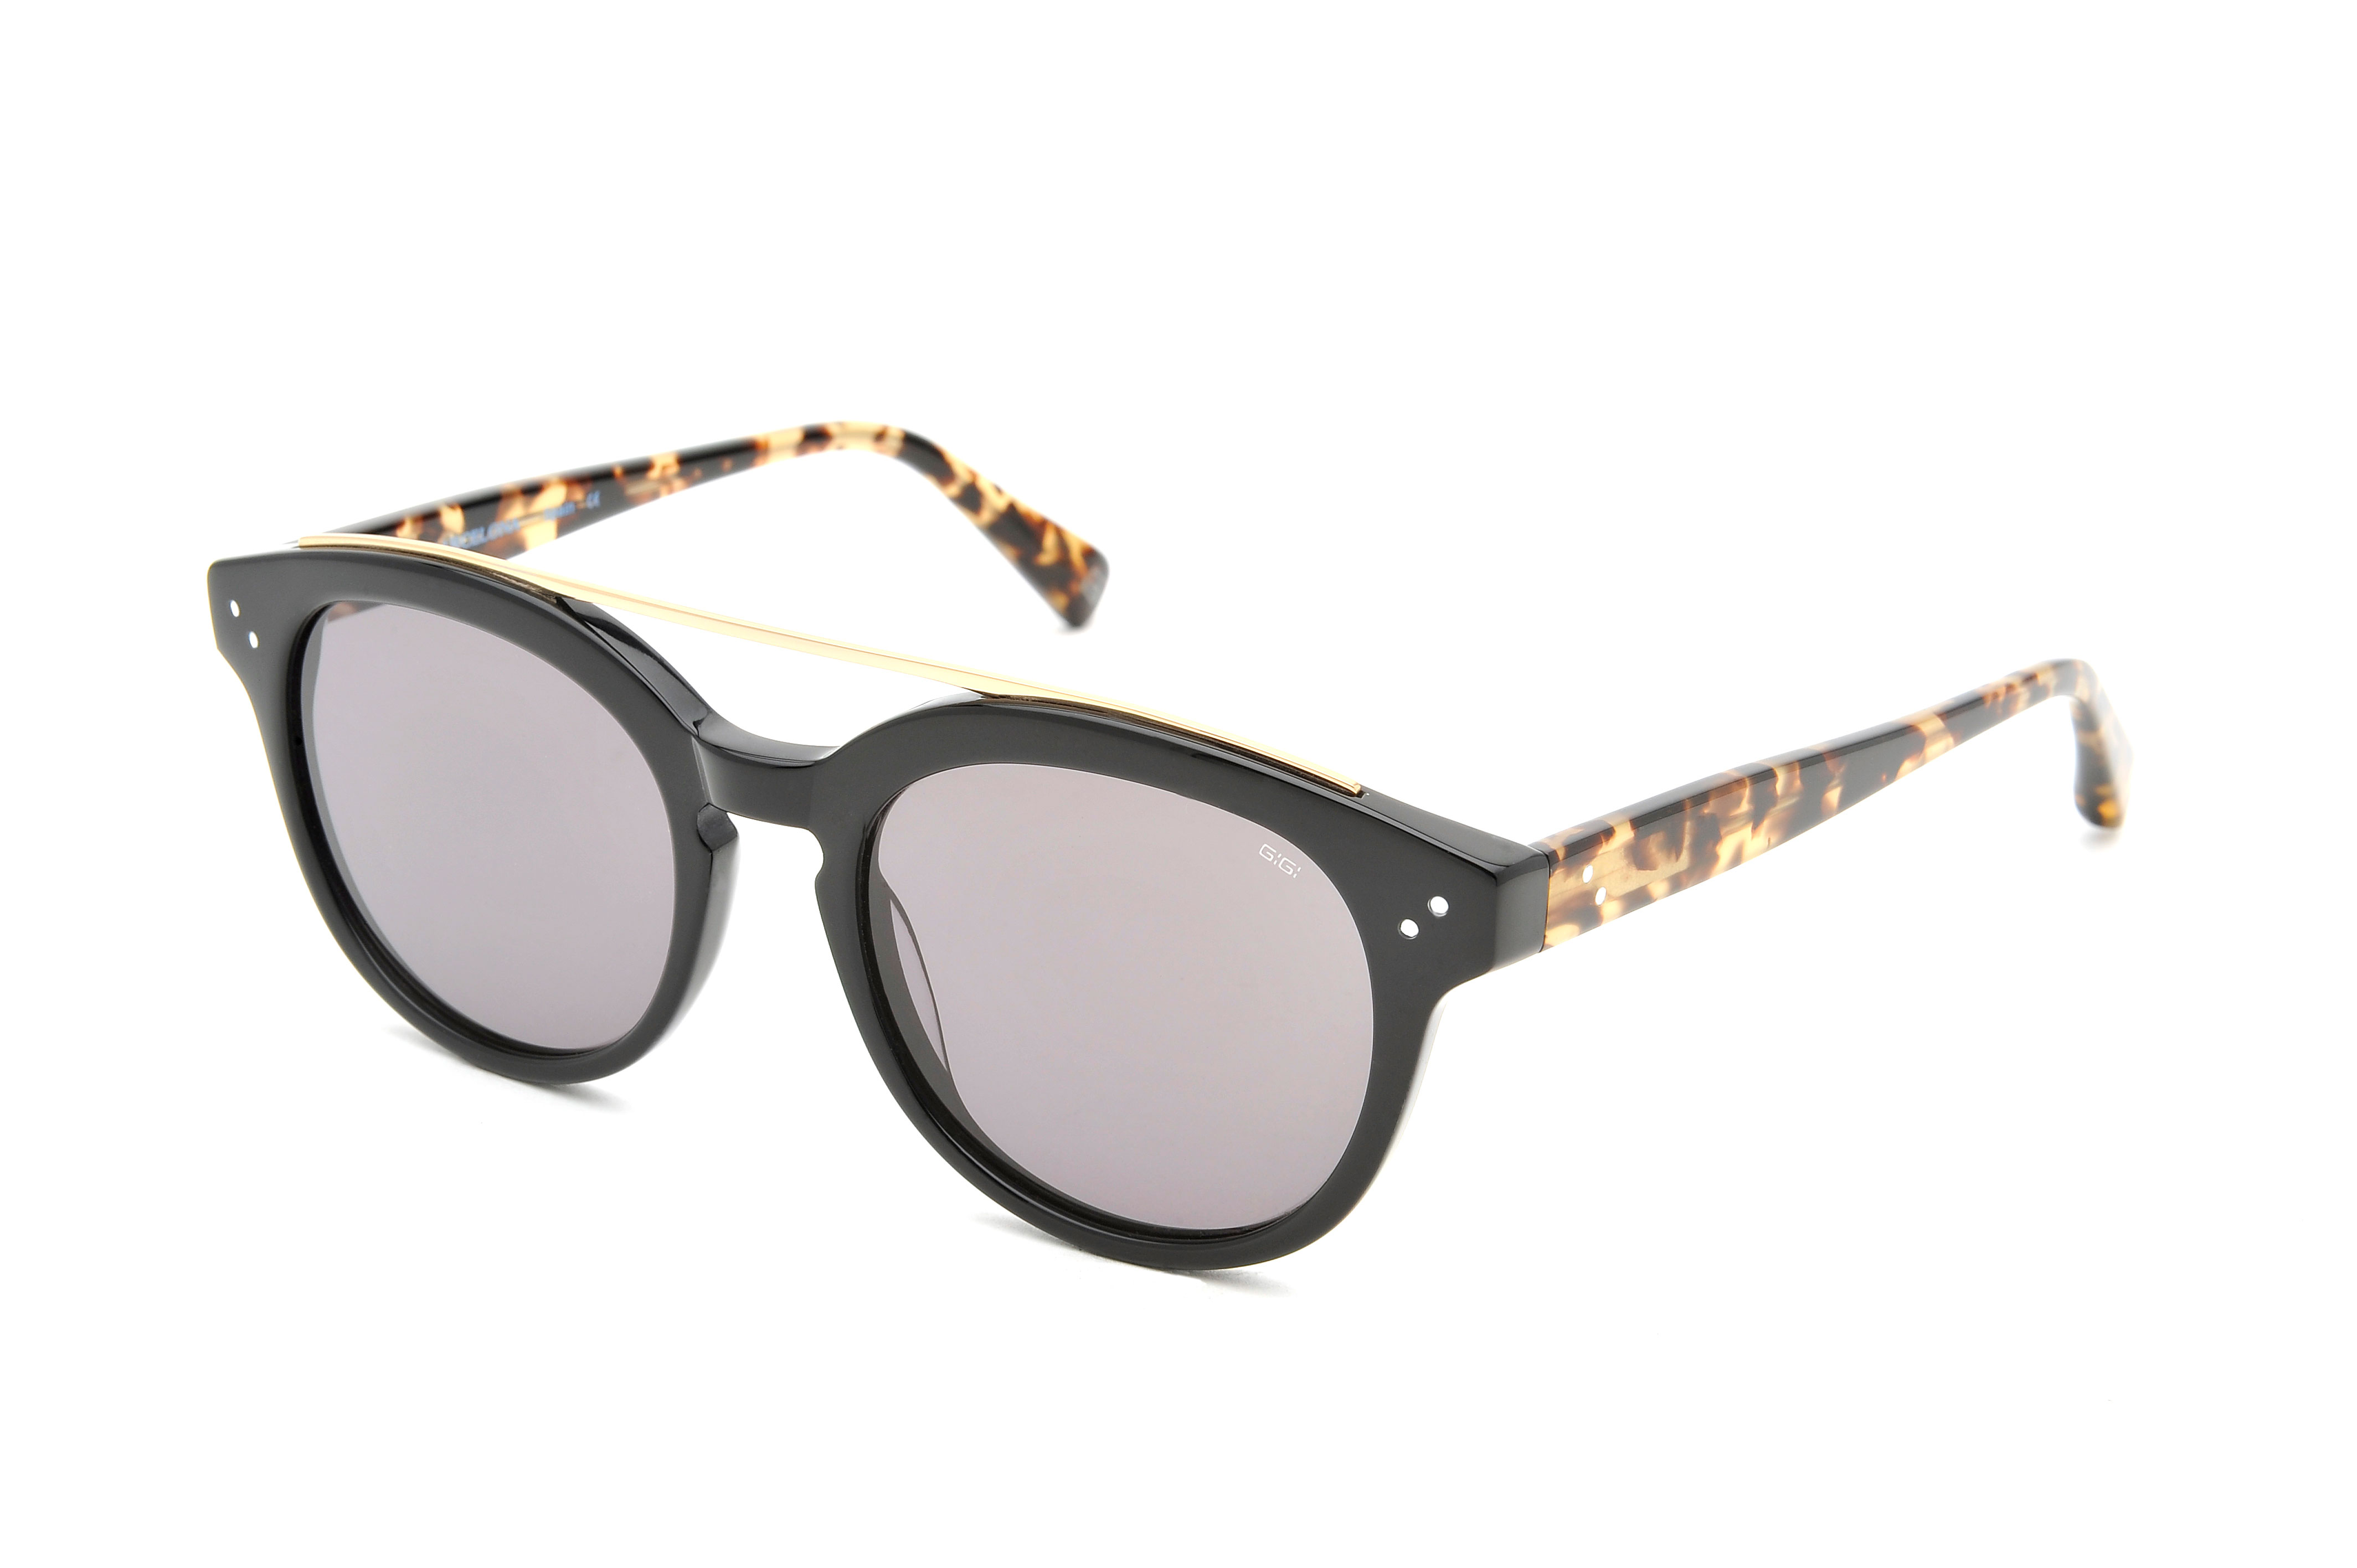 Island acetate aviator black sunglasses by GIGI Studios